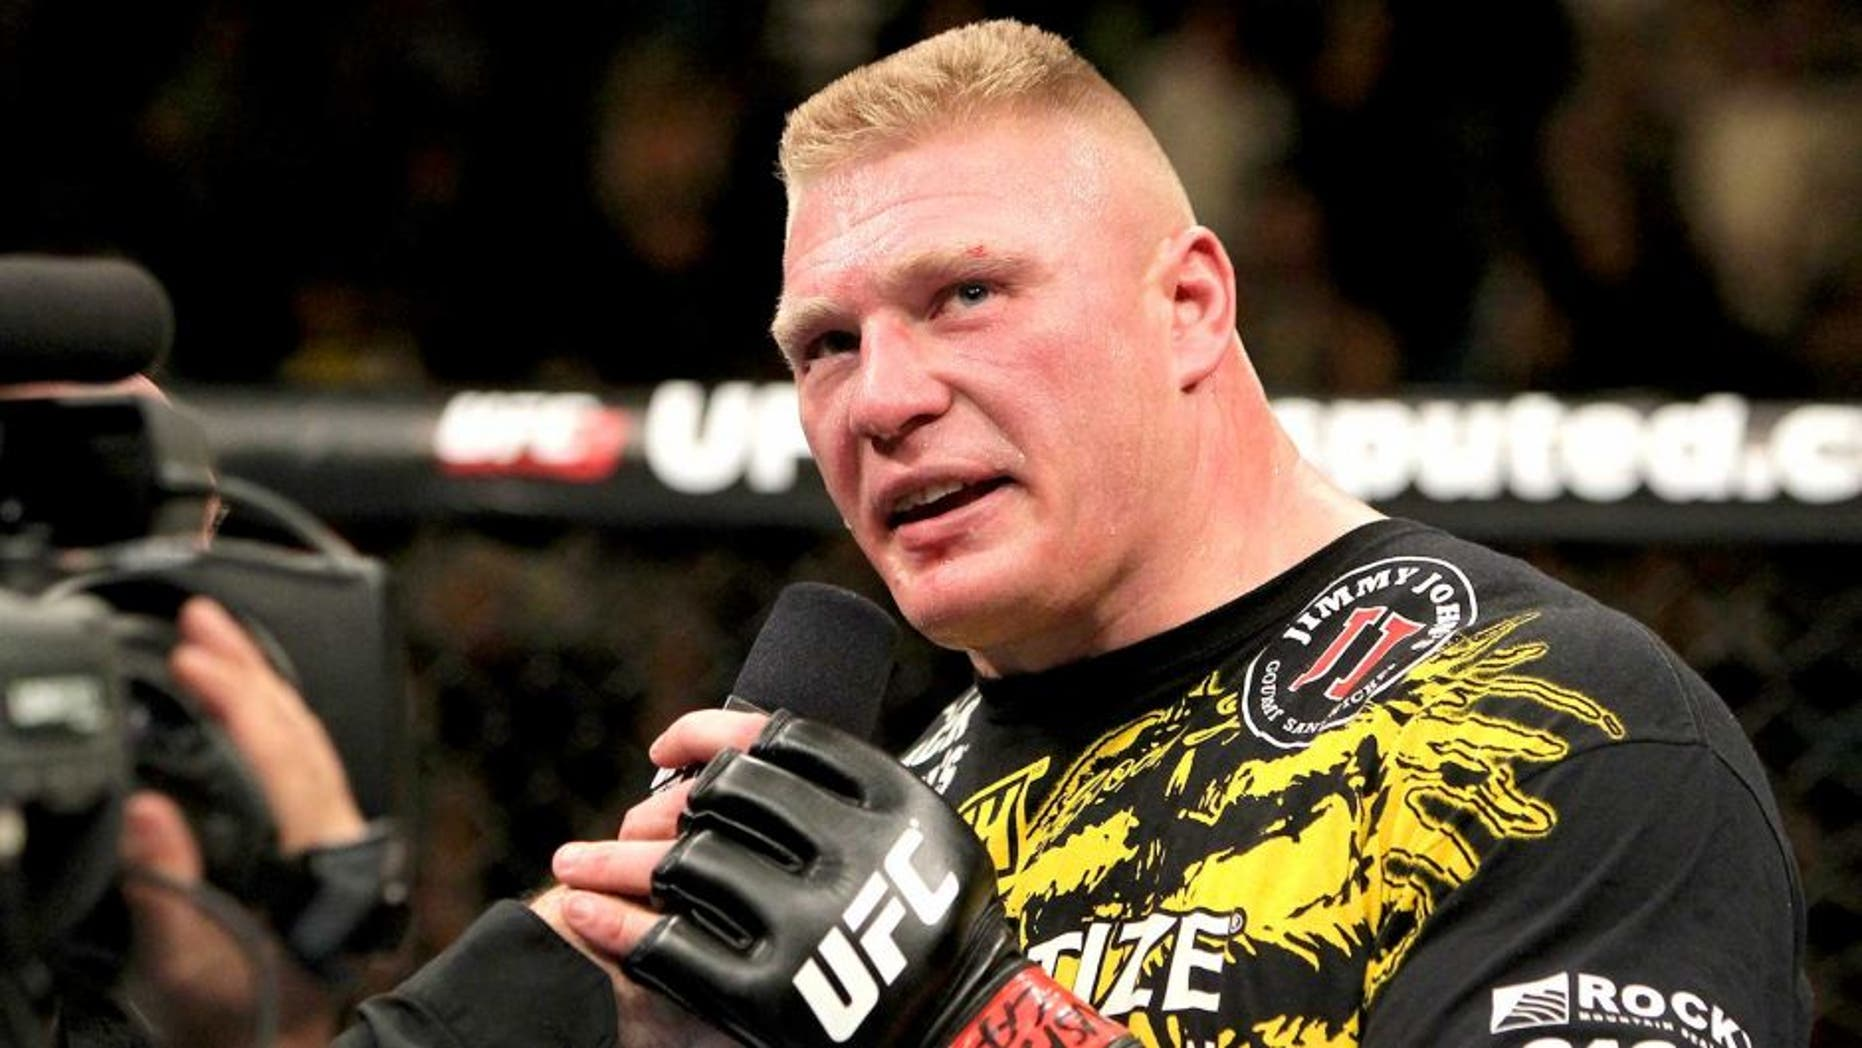 LAS VEGAS, NV - DECEMBER 30: Brock Lesnar announces his retirement in the Octagon after losing to Alistair Overeem during the UFC 141 event at the MGM Grand Garden Arena on December 30, 2011 in Las Vegas, Nevada. (Photo by Josh Hedges/Zuffa LLC/Zuffa LLC via Getty Images)